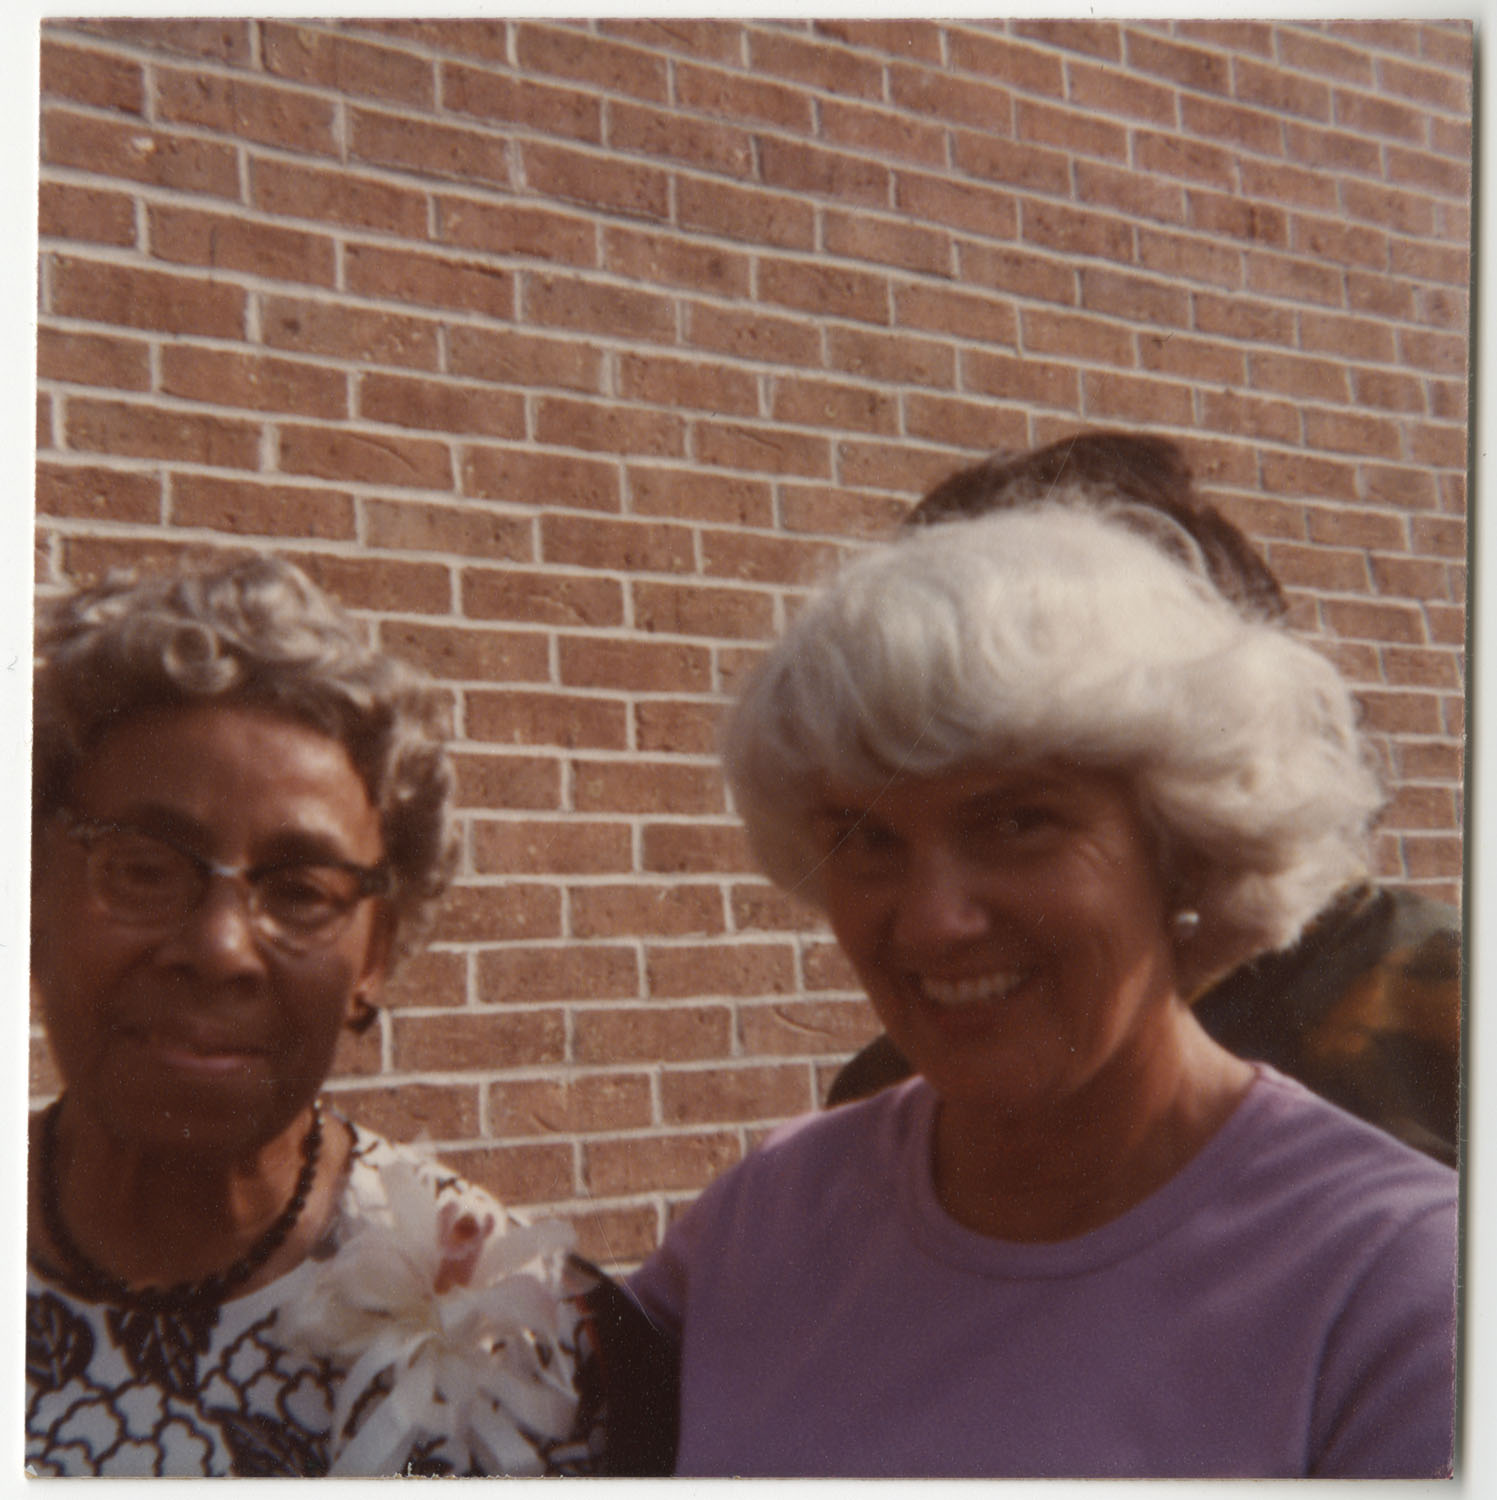 Septima P. Clark and Woman, Septima P. Clark Day Care Center Ceremony, May 19, 1978